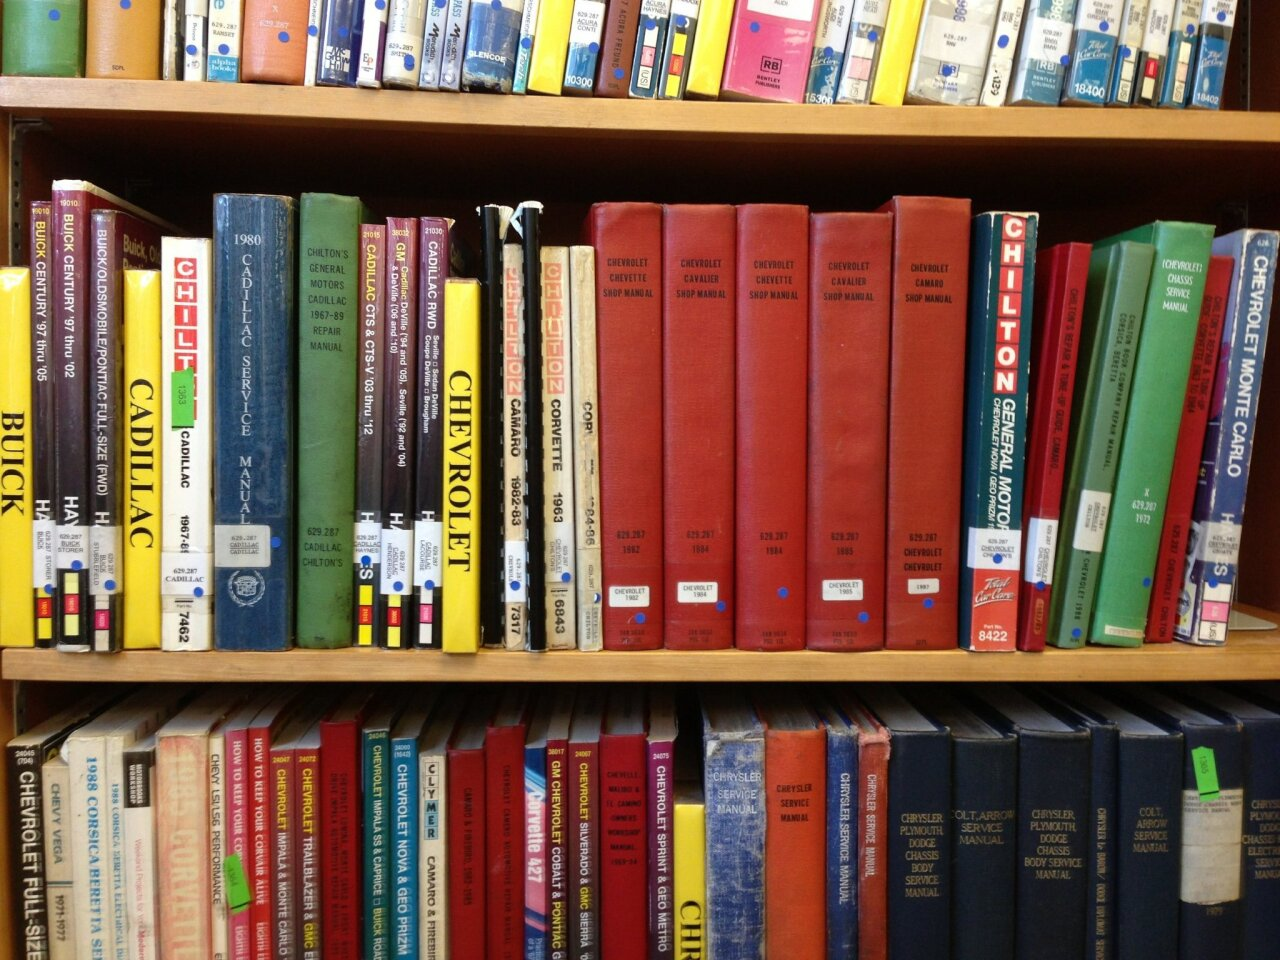 The San Diego city library catalog shows 57 items that have been overdue since Nov. 14, 2002, or before. That's as far back as the database goes. The patrons who failed to return those items owe $1,122 total in fines. The guilty parties can return the items this month to take advantage of a fine-forgiveness program — half off! Page through to see books that have been overdue since November 2002 or longer, ranked by accrued fine.